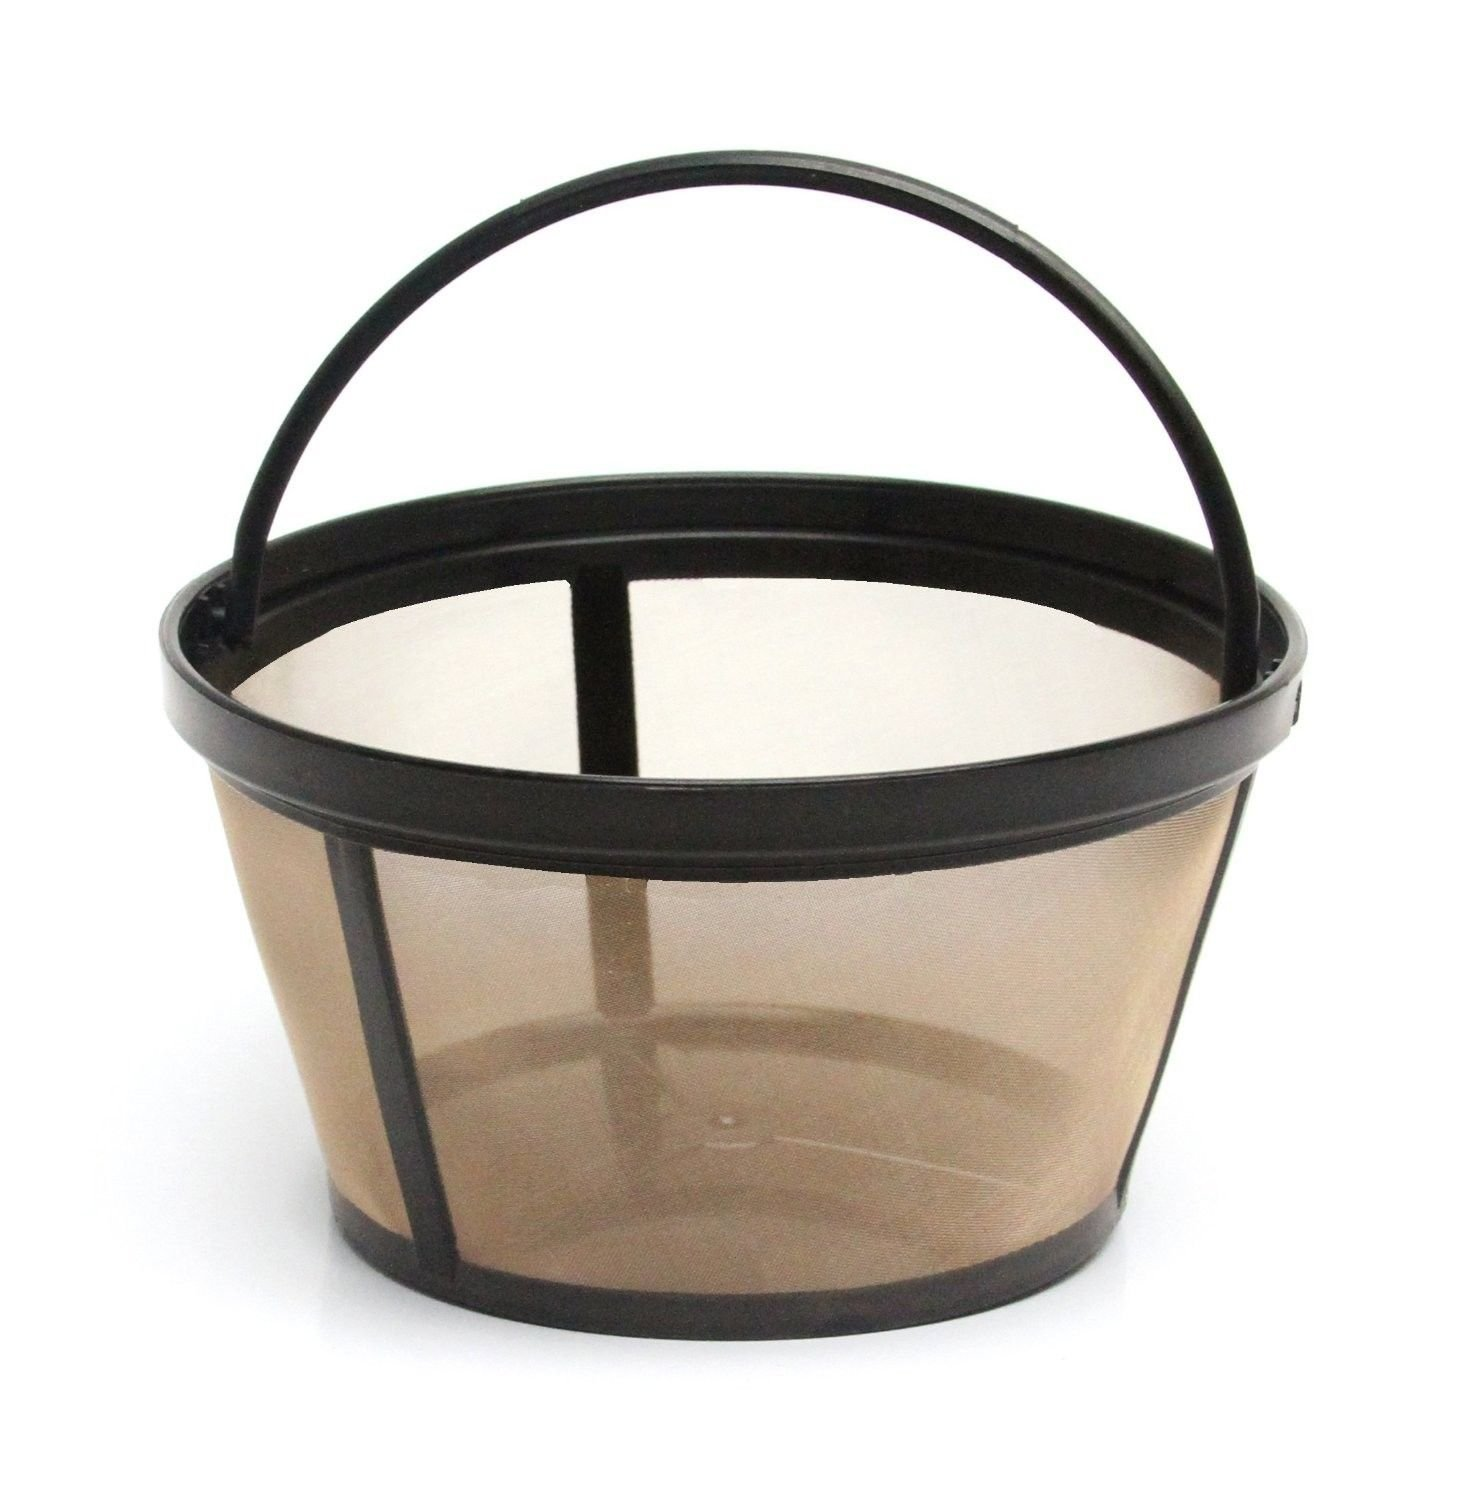 Basket-Style Gold Tone Coffee Filters designed for Mr. Coffee 10-12 cup basket-style coffeemakers, 2 Pieces